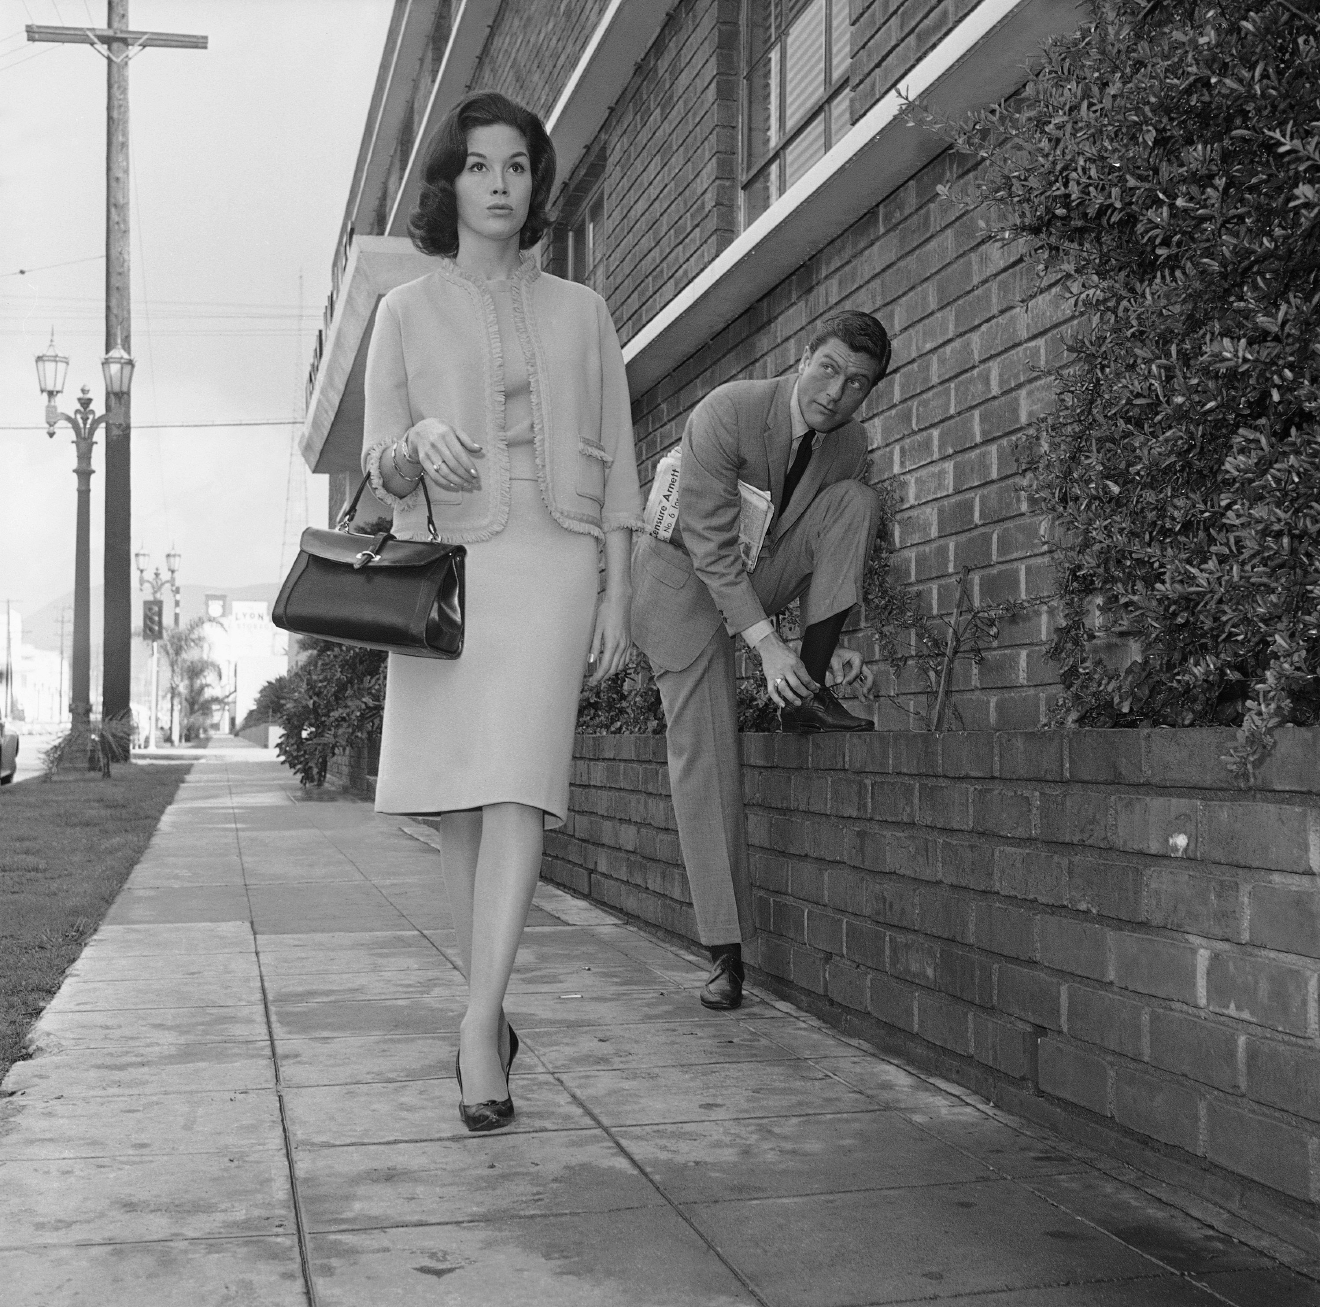 Actor Dick Van Dyke, right, looks on as actress Mary Tyler Moore walks by, Feb. 22, 1962, Los Angeles, Calif. (AP Photo/Don Brinn)